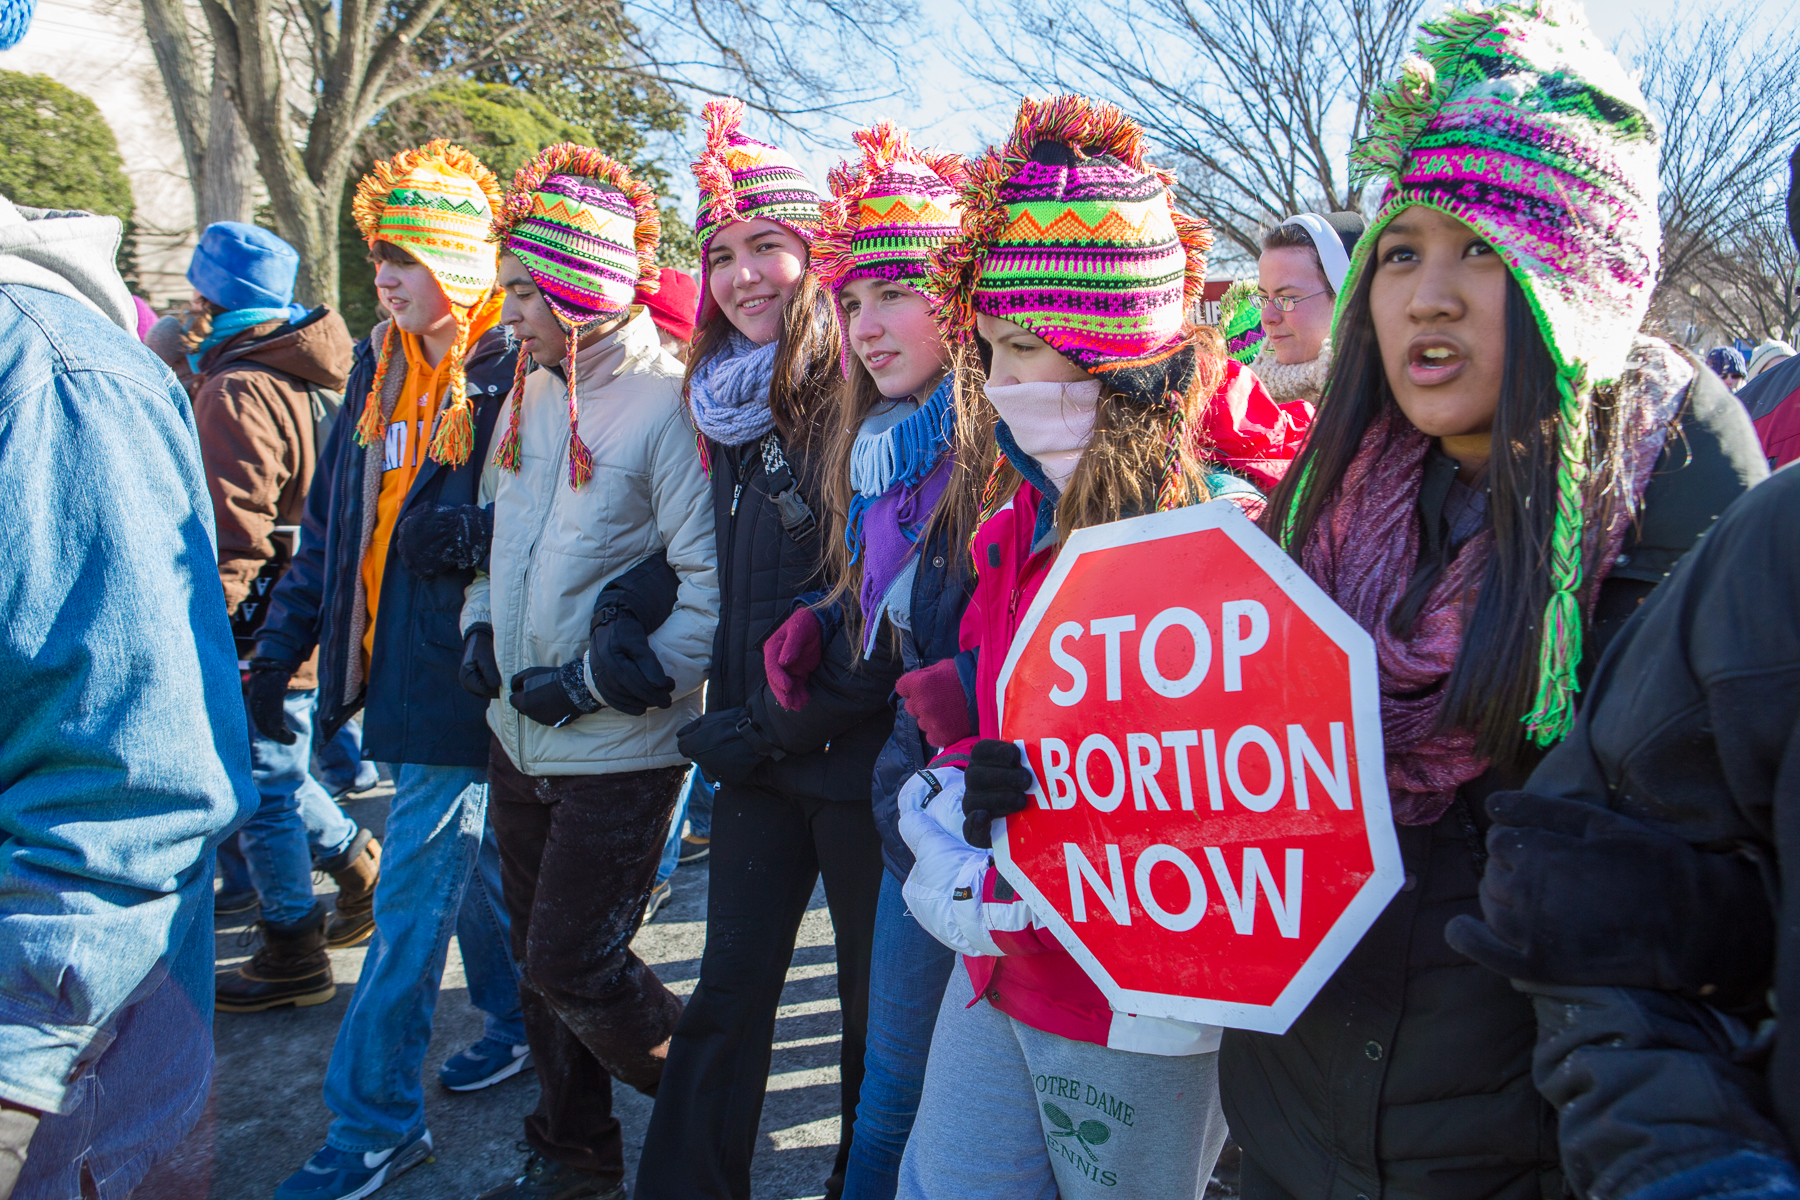 Youth from the Diocese of Knoxville participate in the 2014 March for Life.